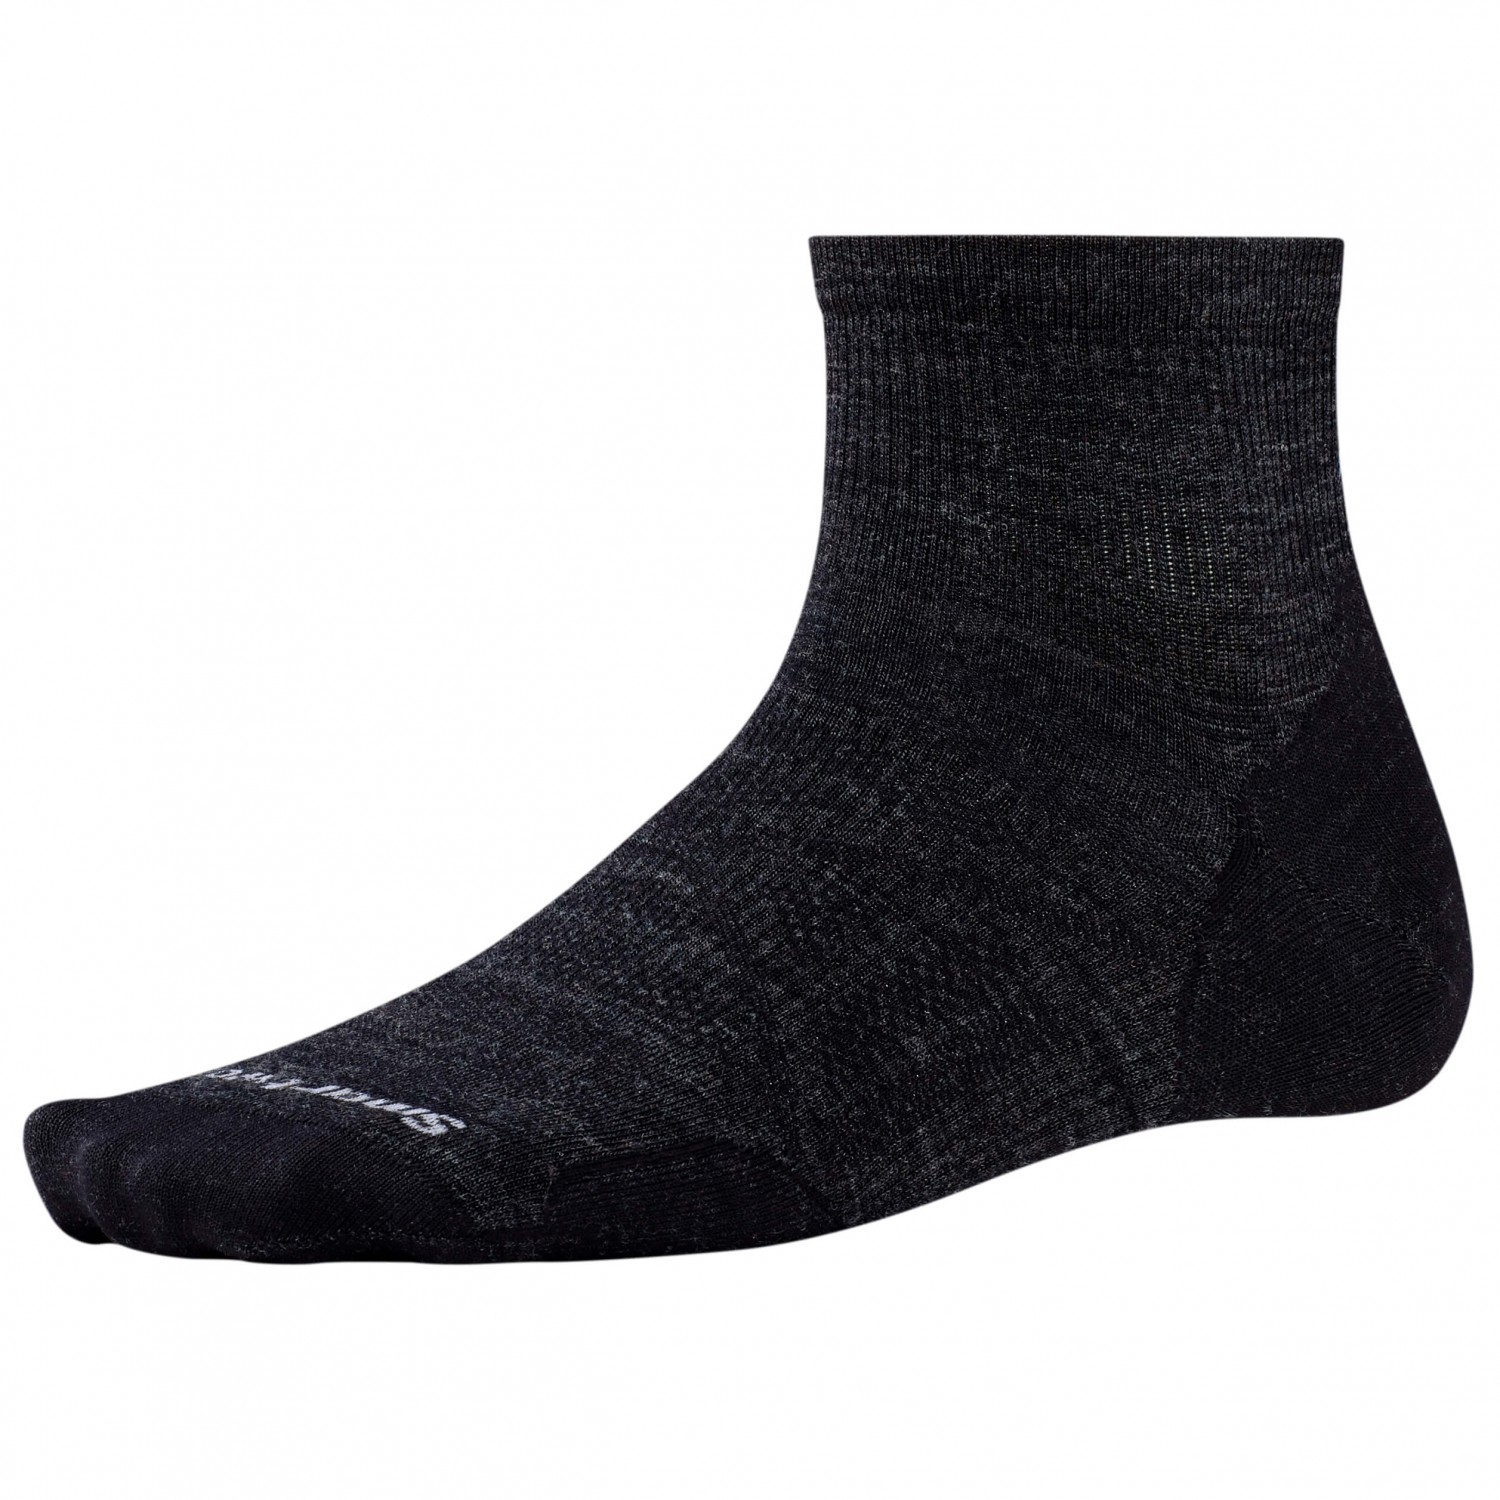 20% Off SmartWool Online coupons, shopping deals on adalatblog.ml